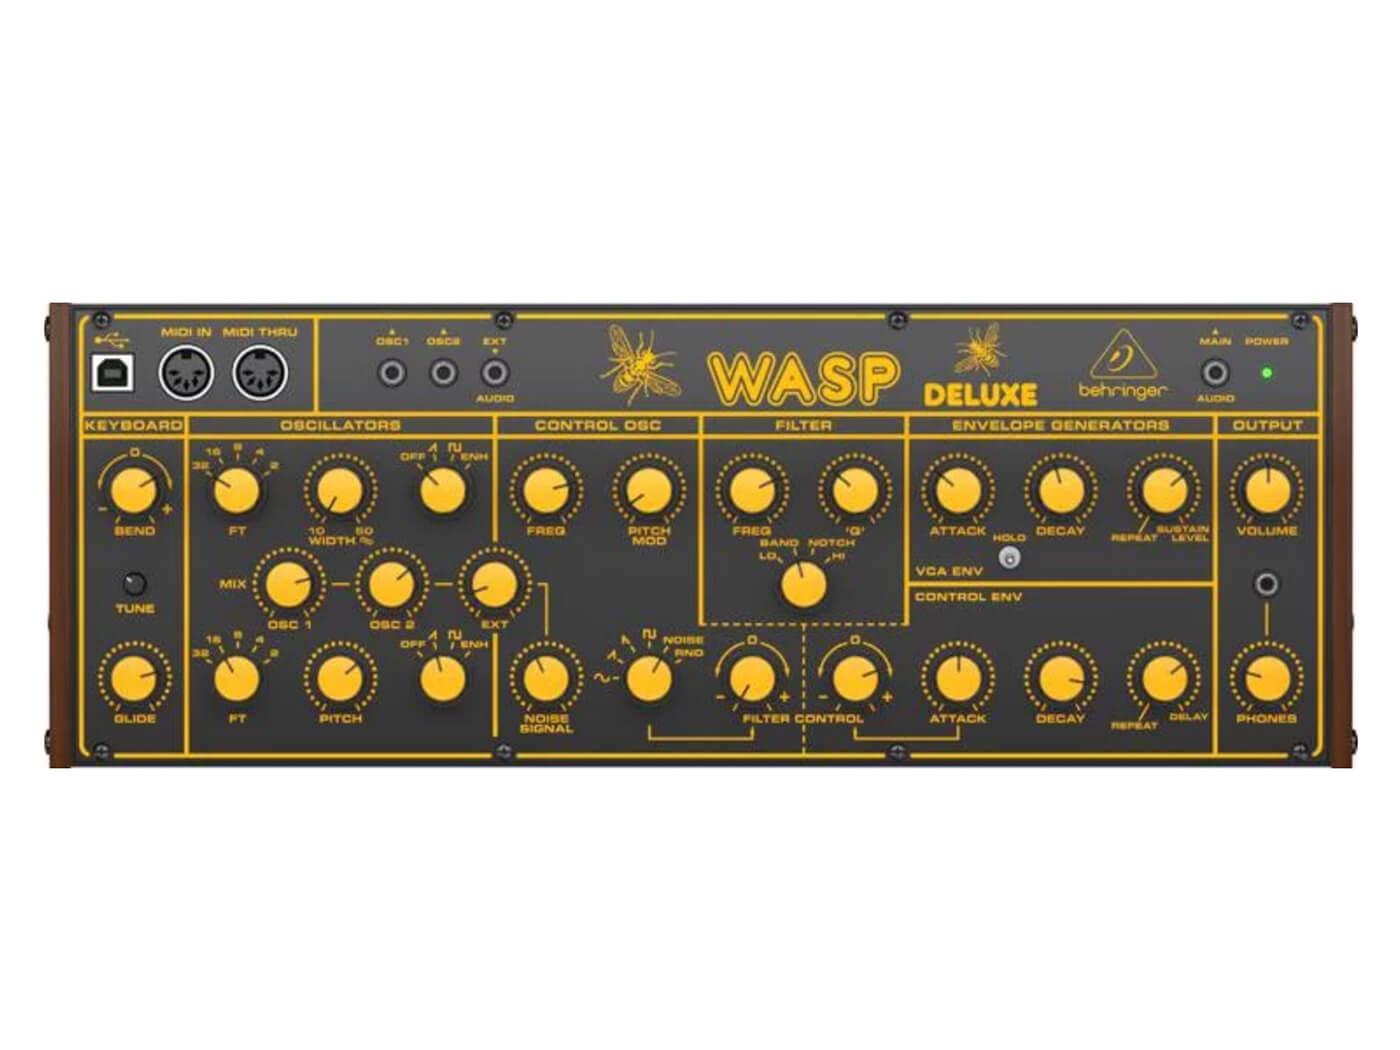 See Behringer's hyped Wasp Deluxe synth - MusicTech